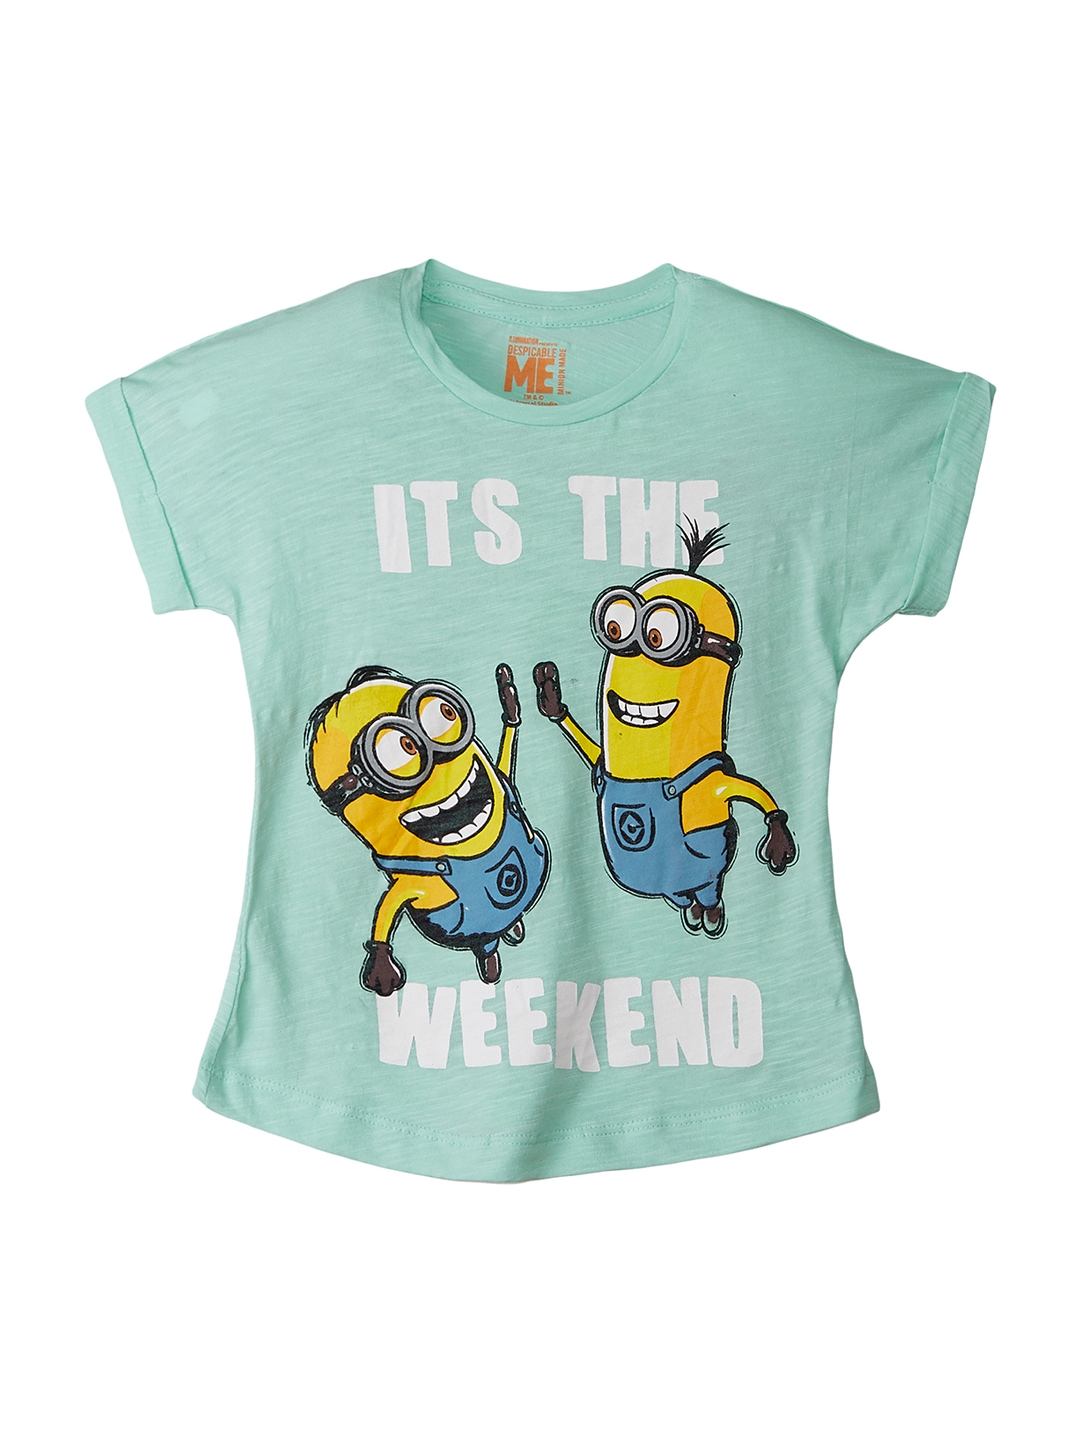 d2ec7042 Buy Kids Ville Girls Green & Yellow Minions Printed T Shirt ...